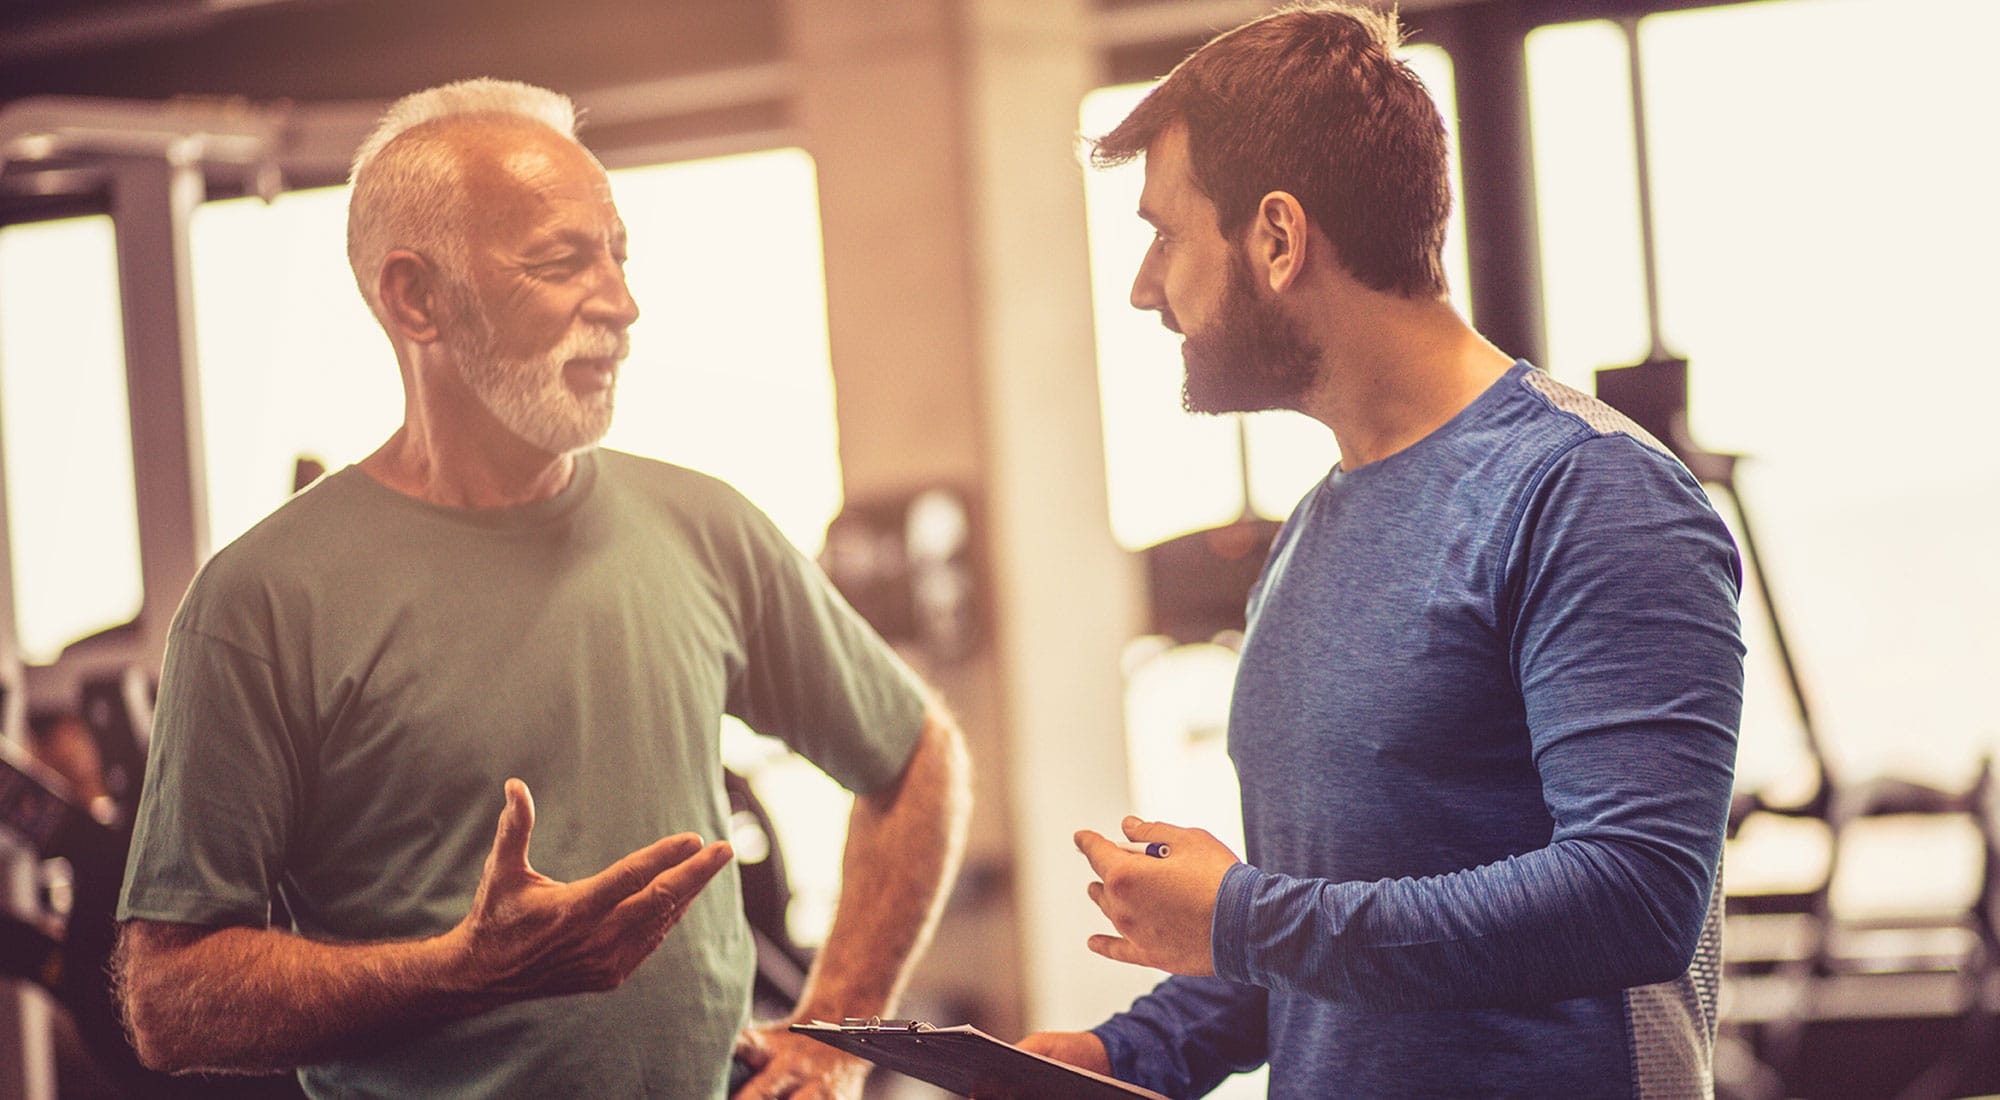 ukactive launches consultation on social prescribing and other health links to uncover physical activity sector's full potential